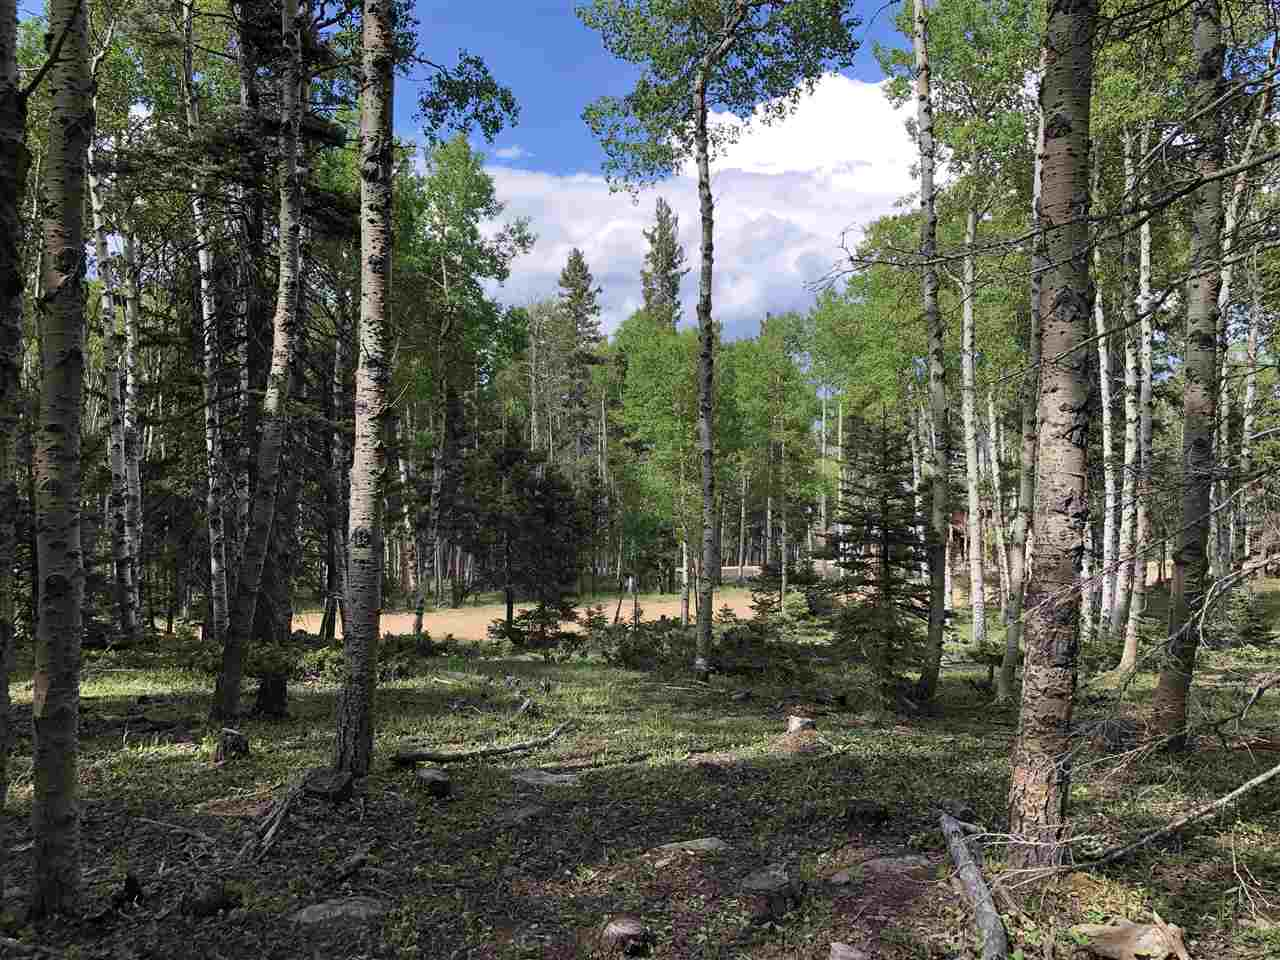 This gorgeous 5.27 acre lot is right in the heart of The Aspens subdivision.  Known for its large acre parcels and positioning near the National forest.  Still within the Village of Angel Fire limits allowing for all the benefits of membership and it's spectacular amenity package.  Lot has been thinned and has several beautiful home sites available.  Build your next mountain dream home in New Mexico's premier ski resort.